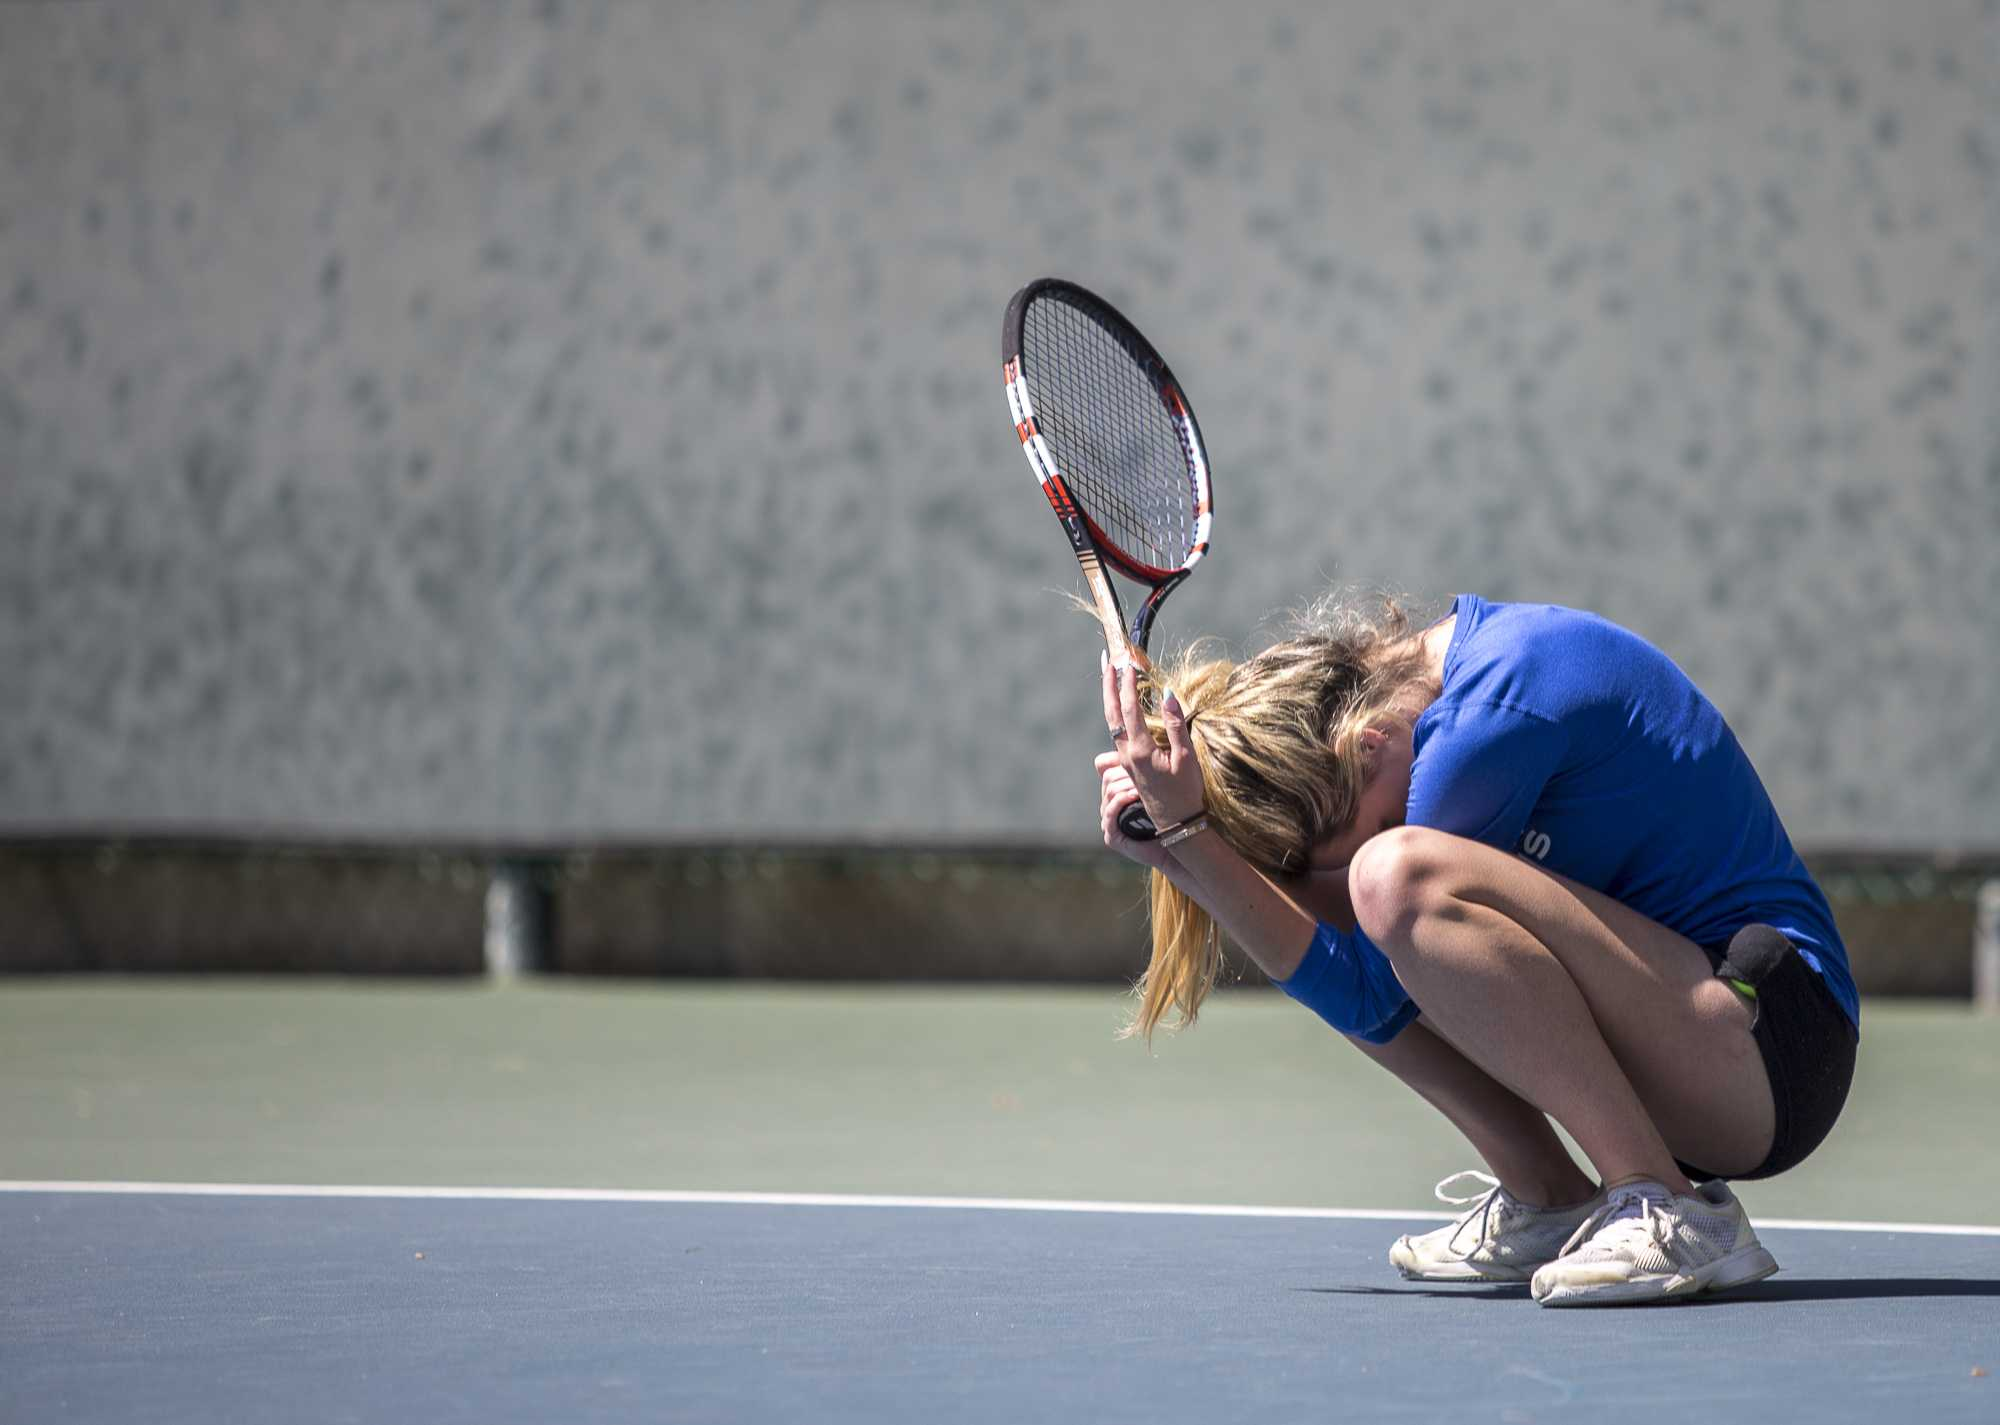 Santa Monica College Corsair freshman Abby Mullins (#2, singles) crouches down in frustration as she loses a game during her 2–0 (6-2, 6-1) set victory, which was part of the Corsairs 7–1 victory against the Ventura College Pirates at the Ocean View Park Tennis Courts in Santa Monica California, on Thursday, March 23, 2017. (Corsair Photo: Matthew Martin)